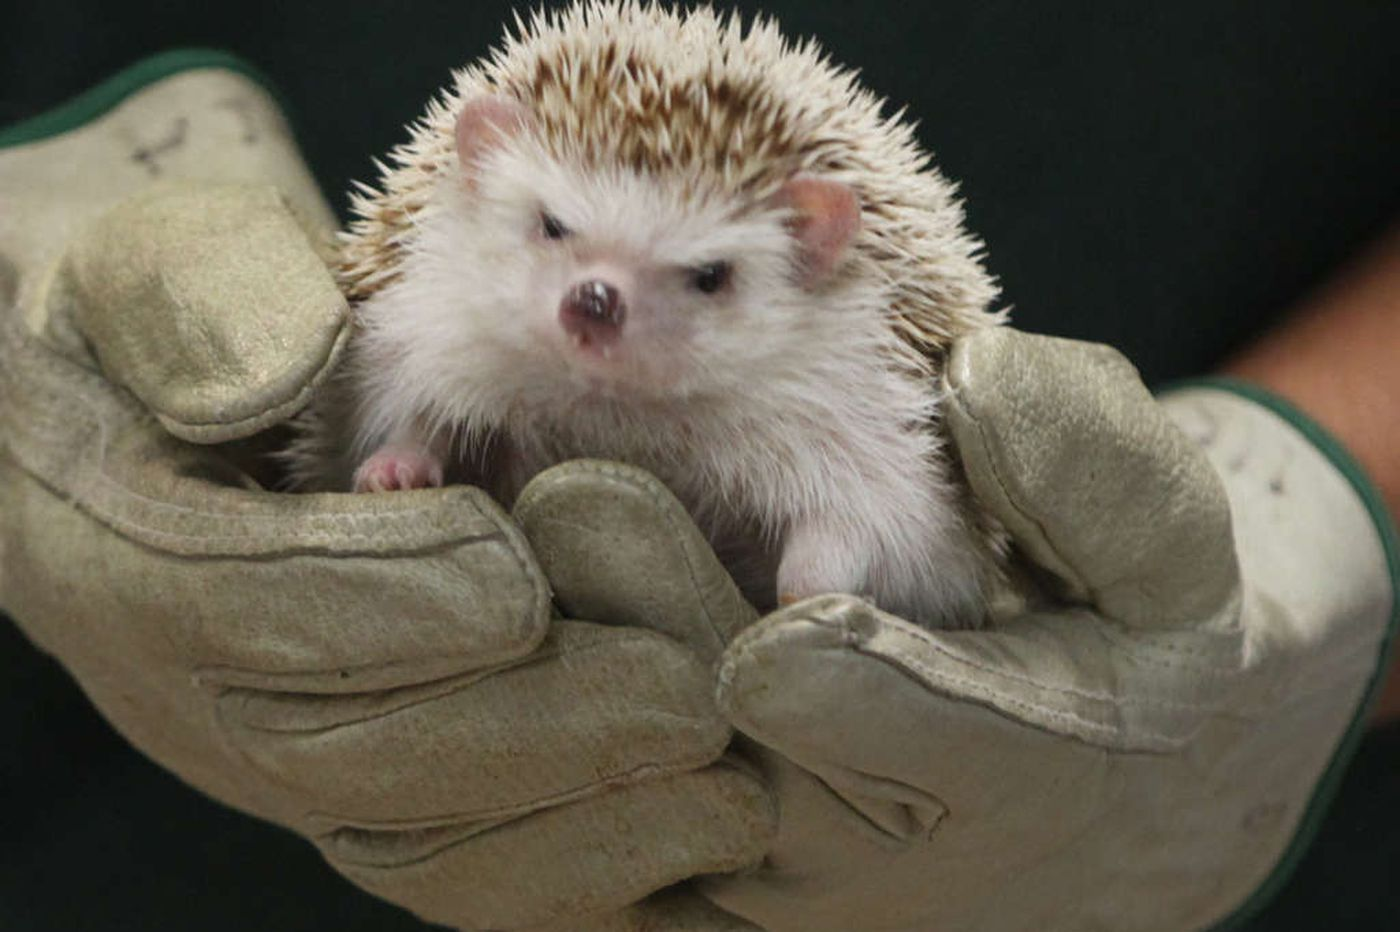 CDC issues salmonella warning about snuggling pet hedgehogs